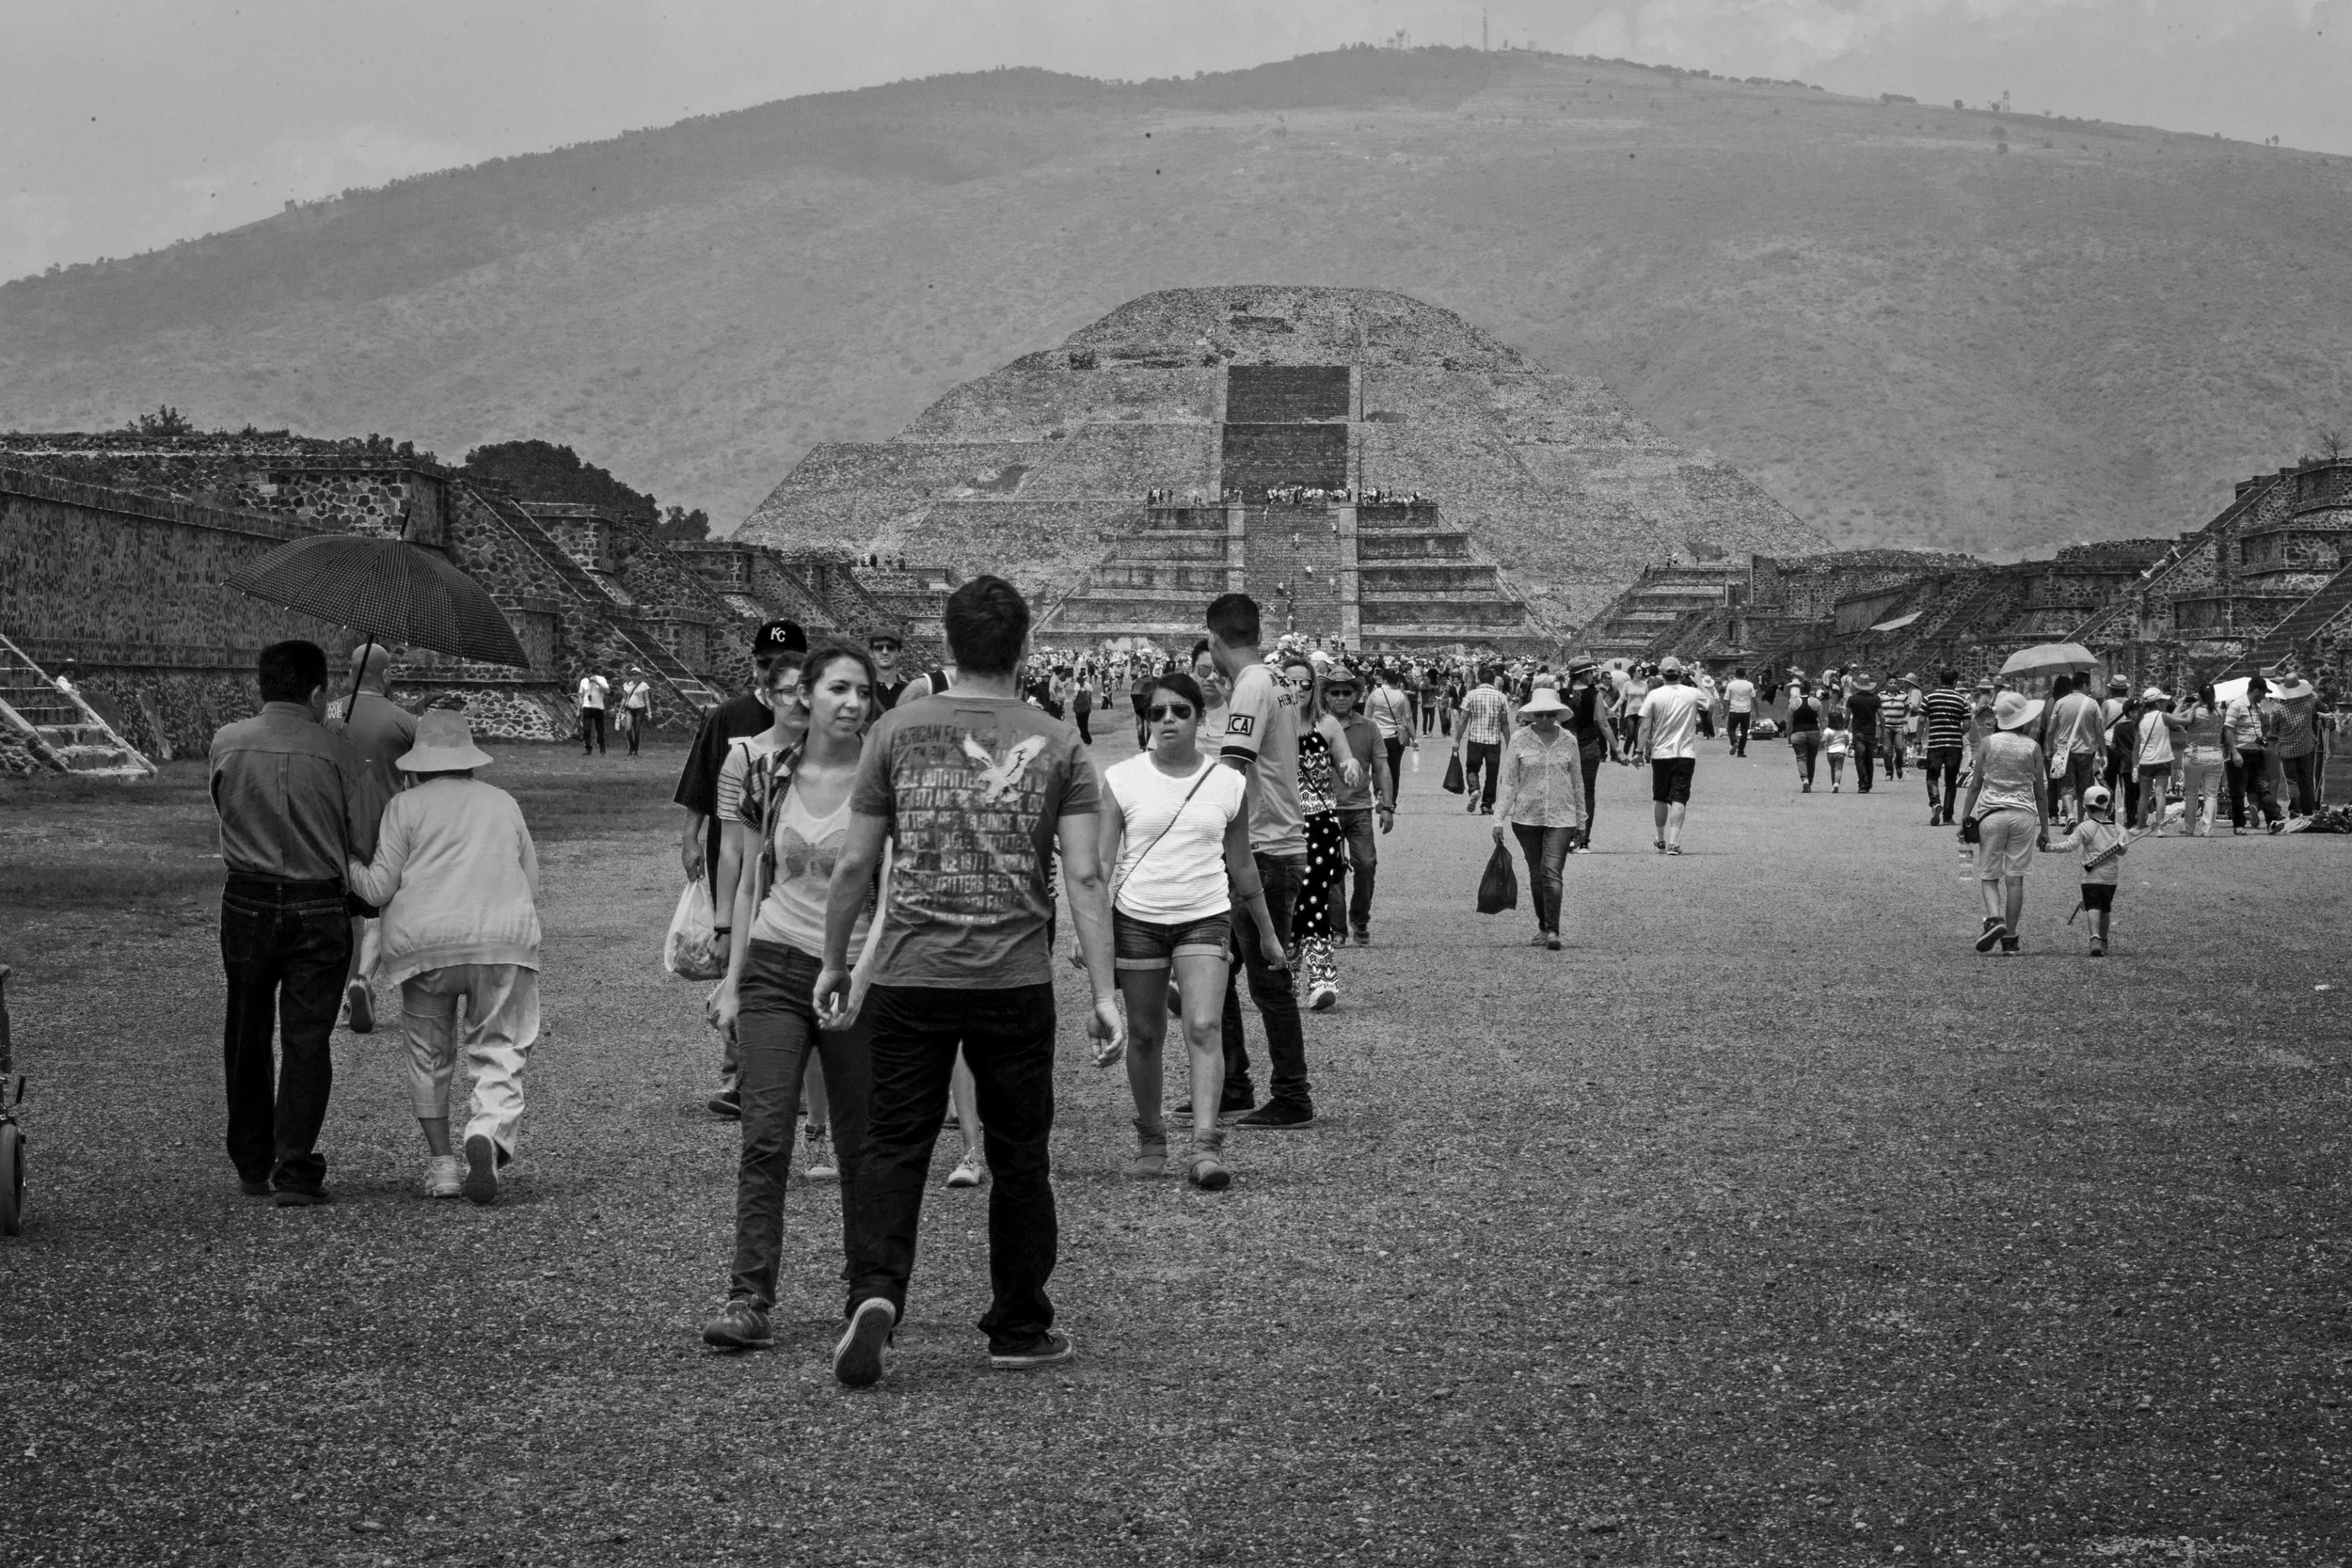 Teotihuacan, Mexico State, Mexico